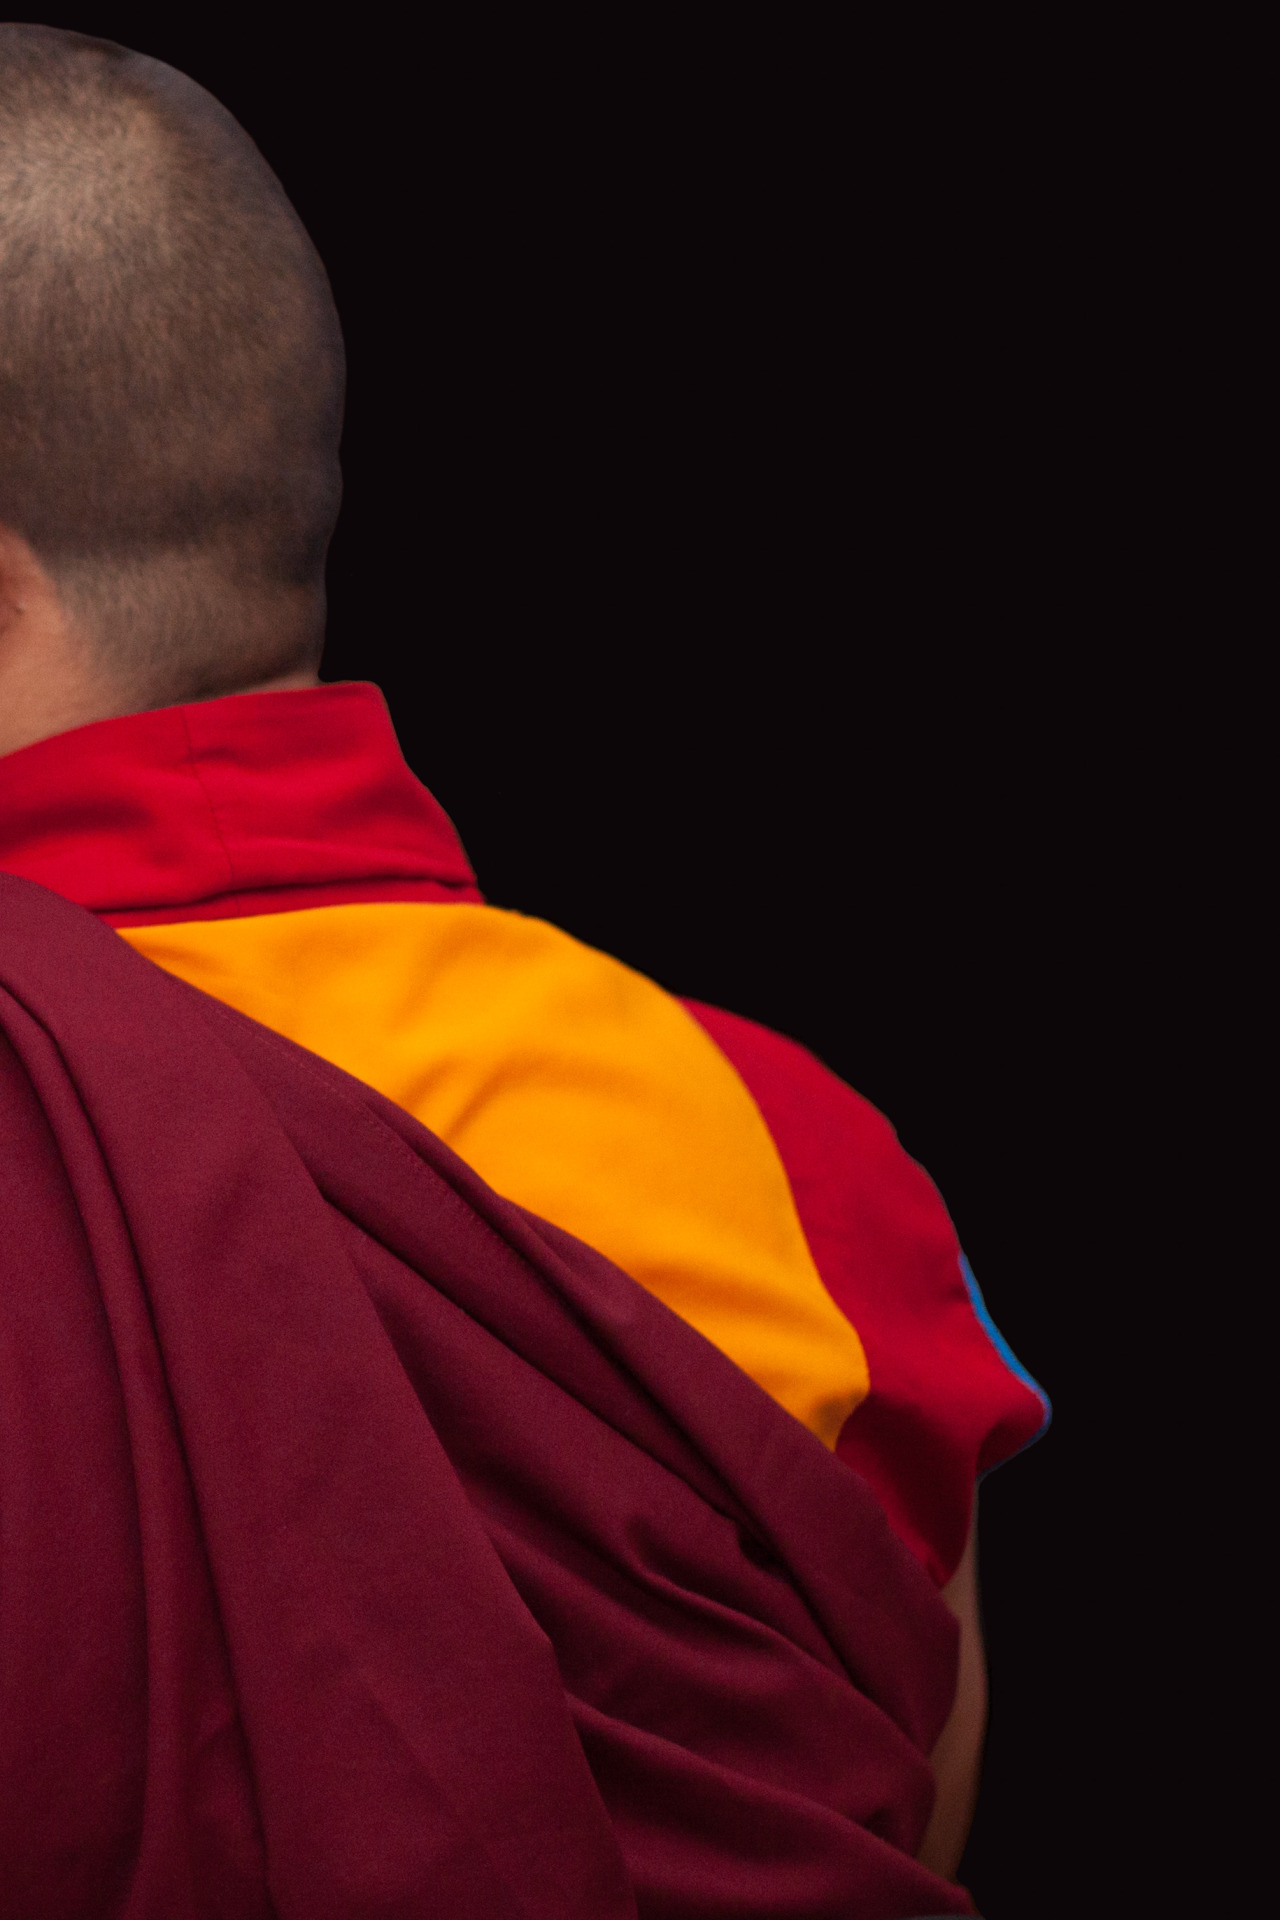 Tibetan monk at  The Feast Worldwide . New York - June 2014.